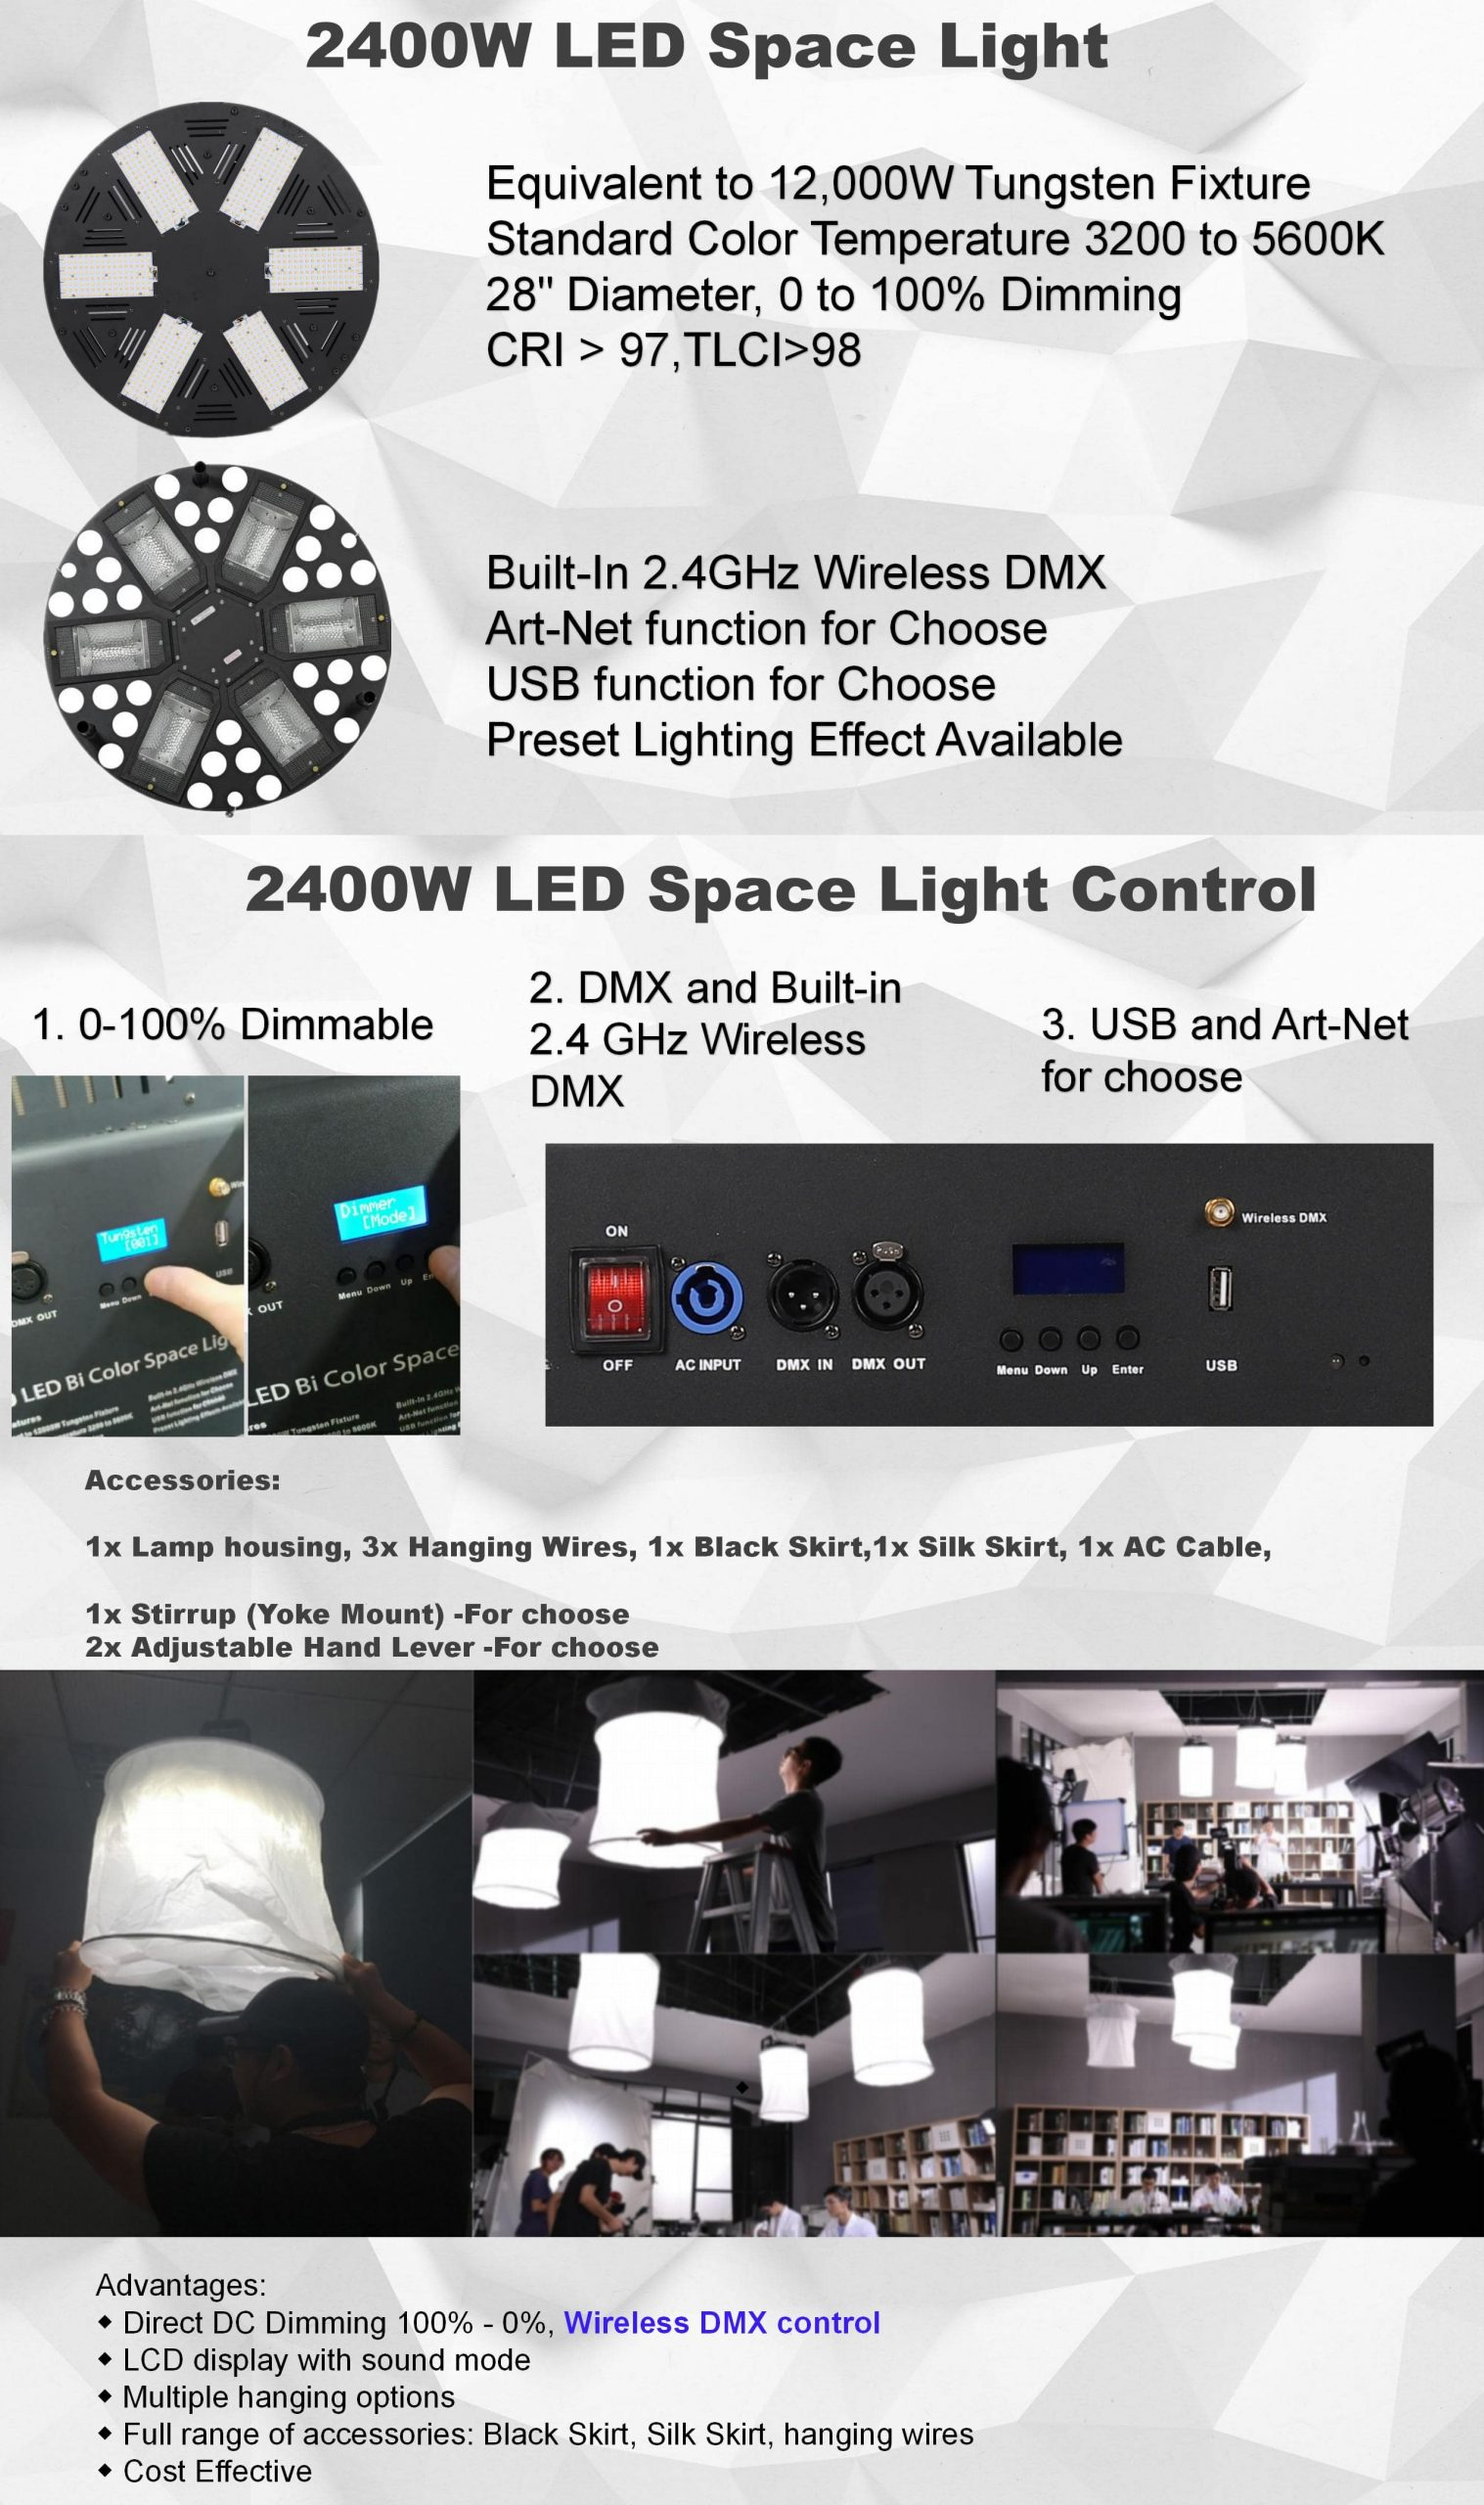 led space light introduction